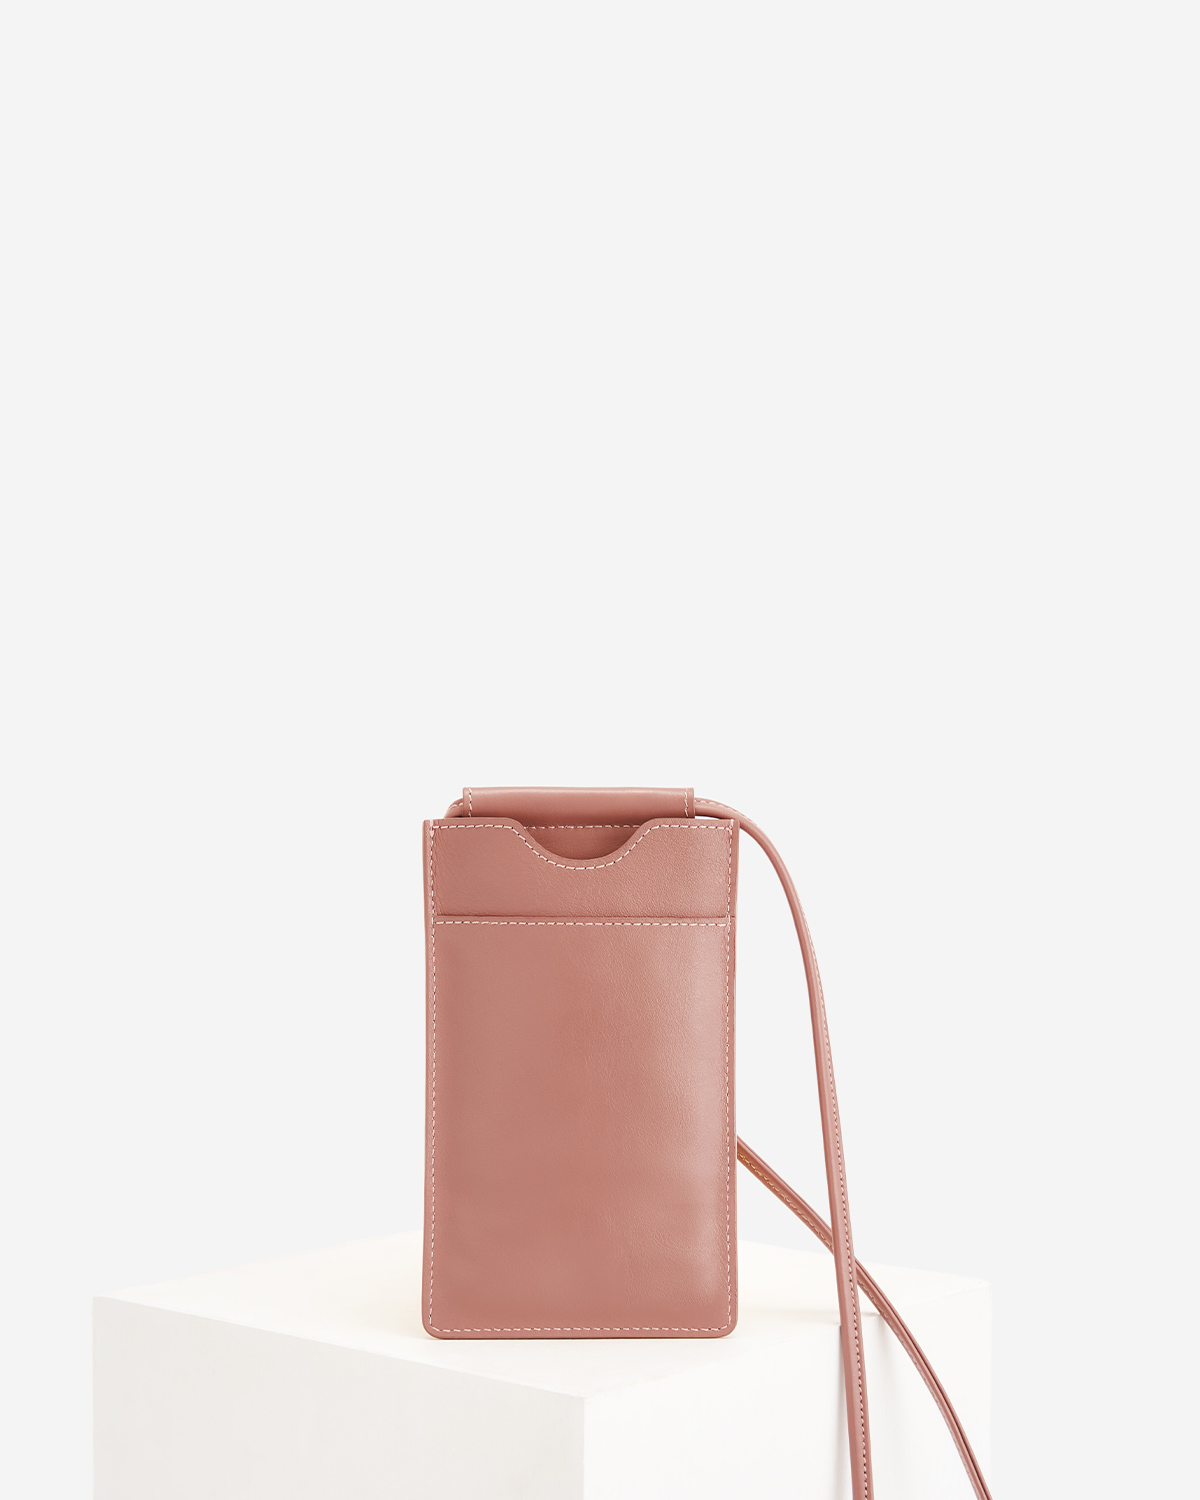 VERA Best Millie Pouch in Rose Tea